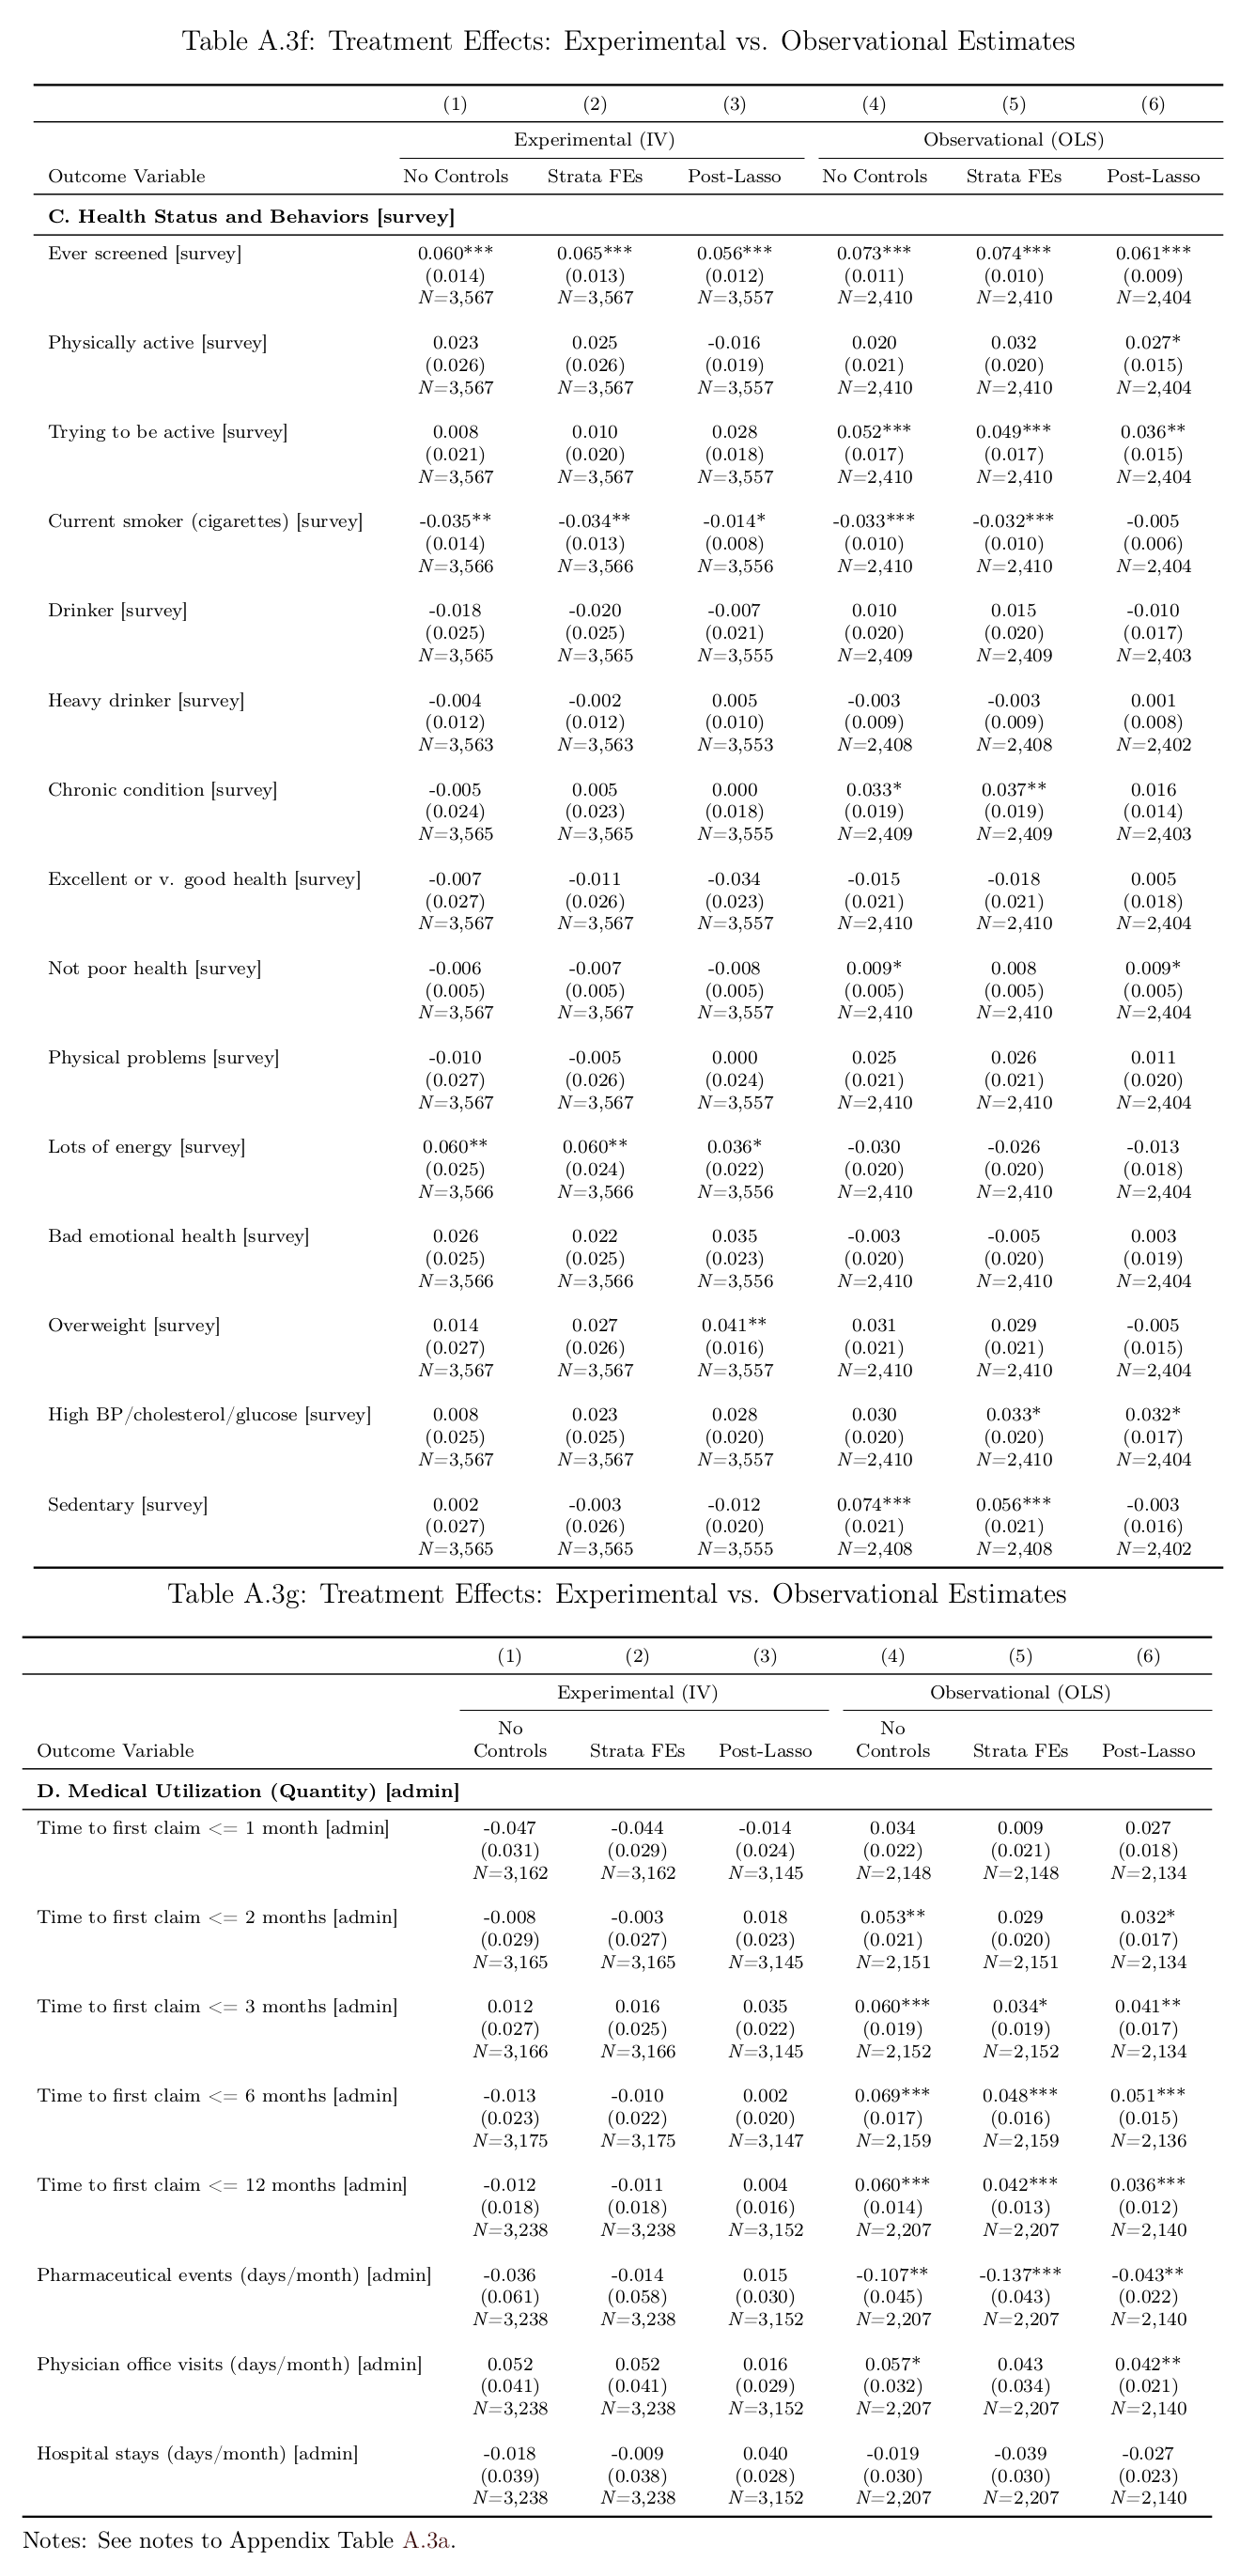 Jones et al 2018 appendix: Table A3, f-g, all randomized vs correlational estimates